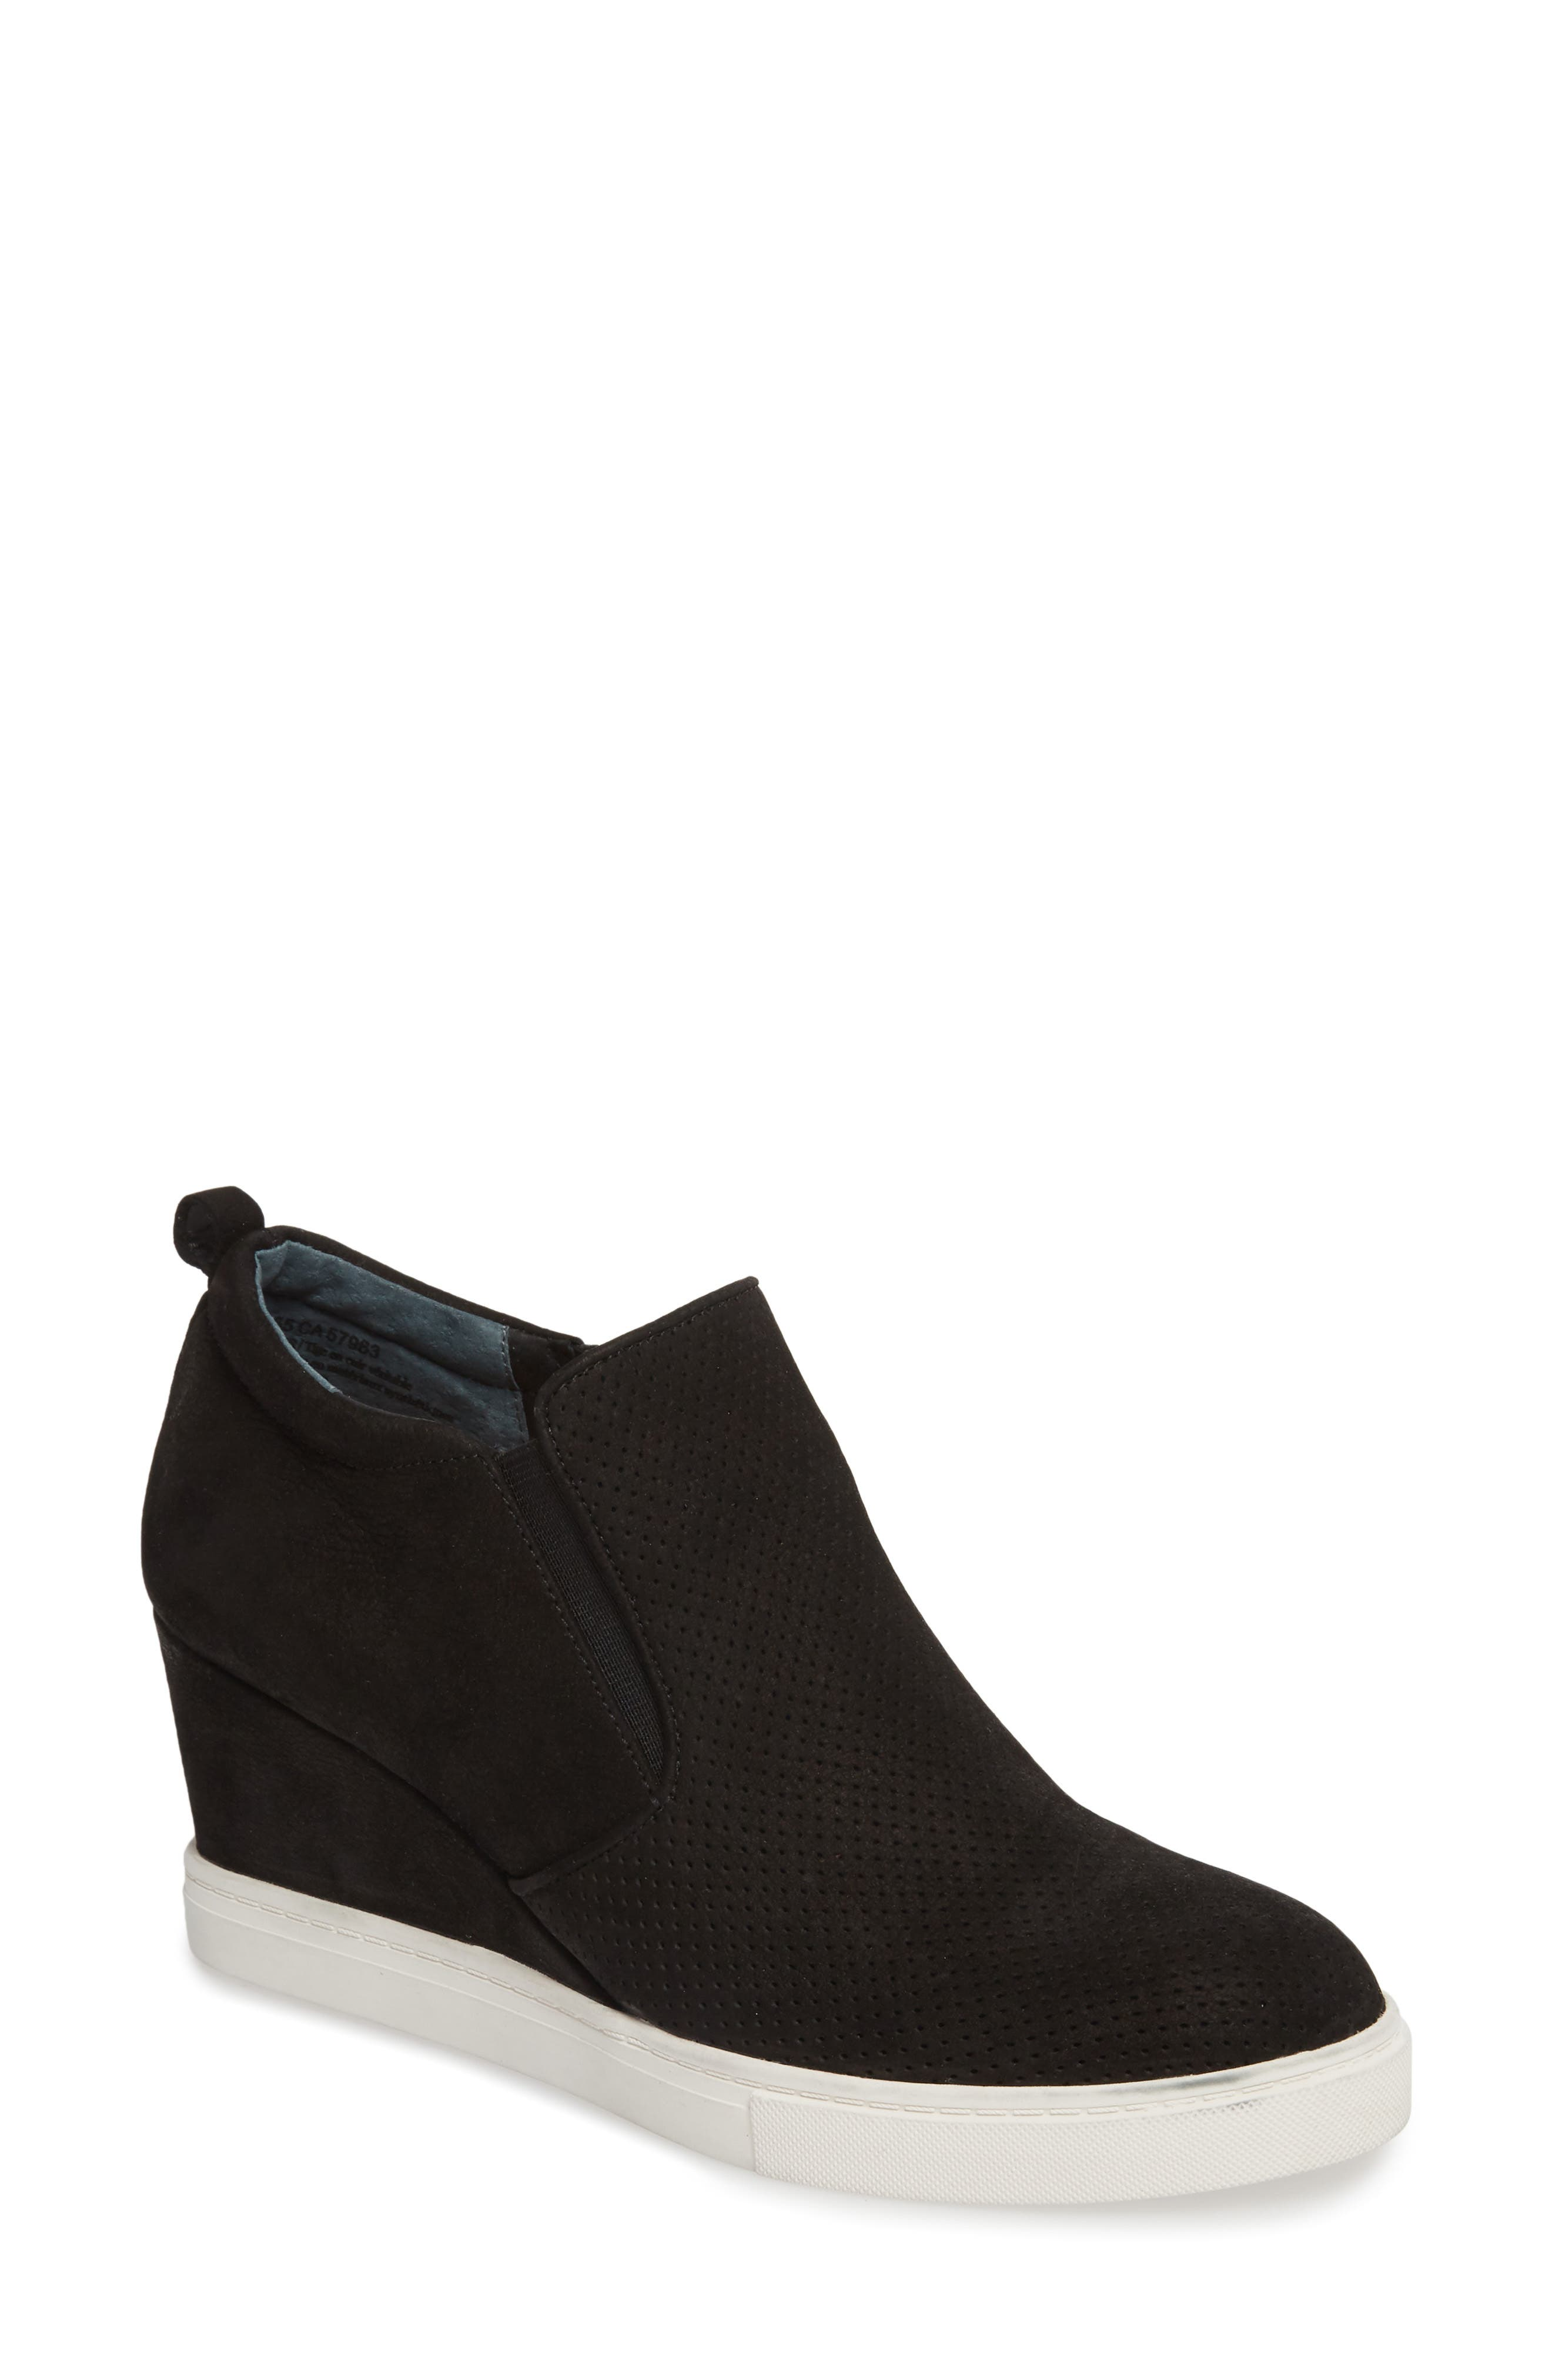 Aiden Wedge Sneaker,                             Main thumbnail 1, color,                             BLACK PERFORATED LEATHER